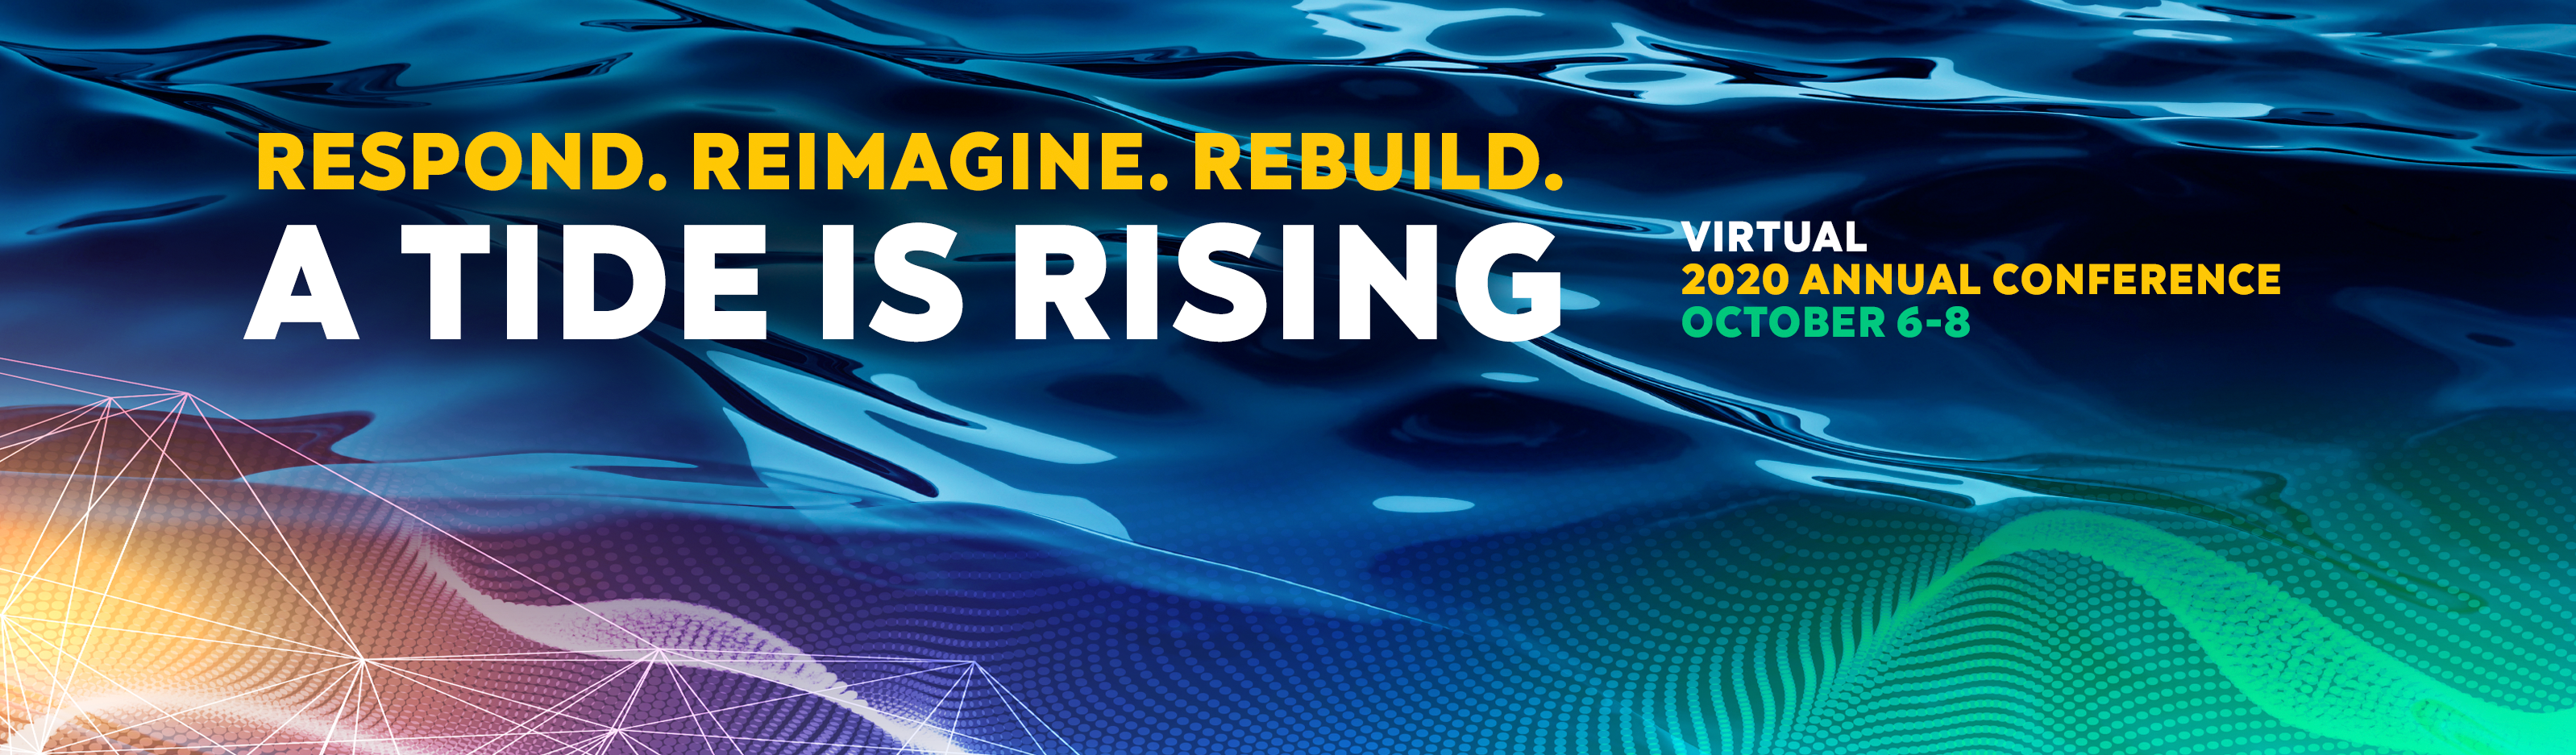 "PNW20 Marquee blue ocean background with theme ""Respond. Reimagine. Rebuild."" A Tide Is Rising"